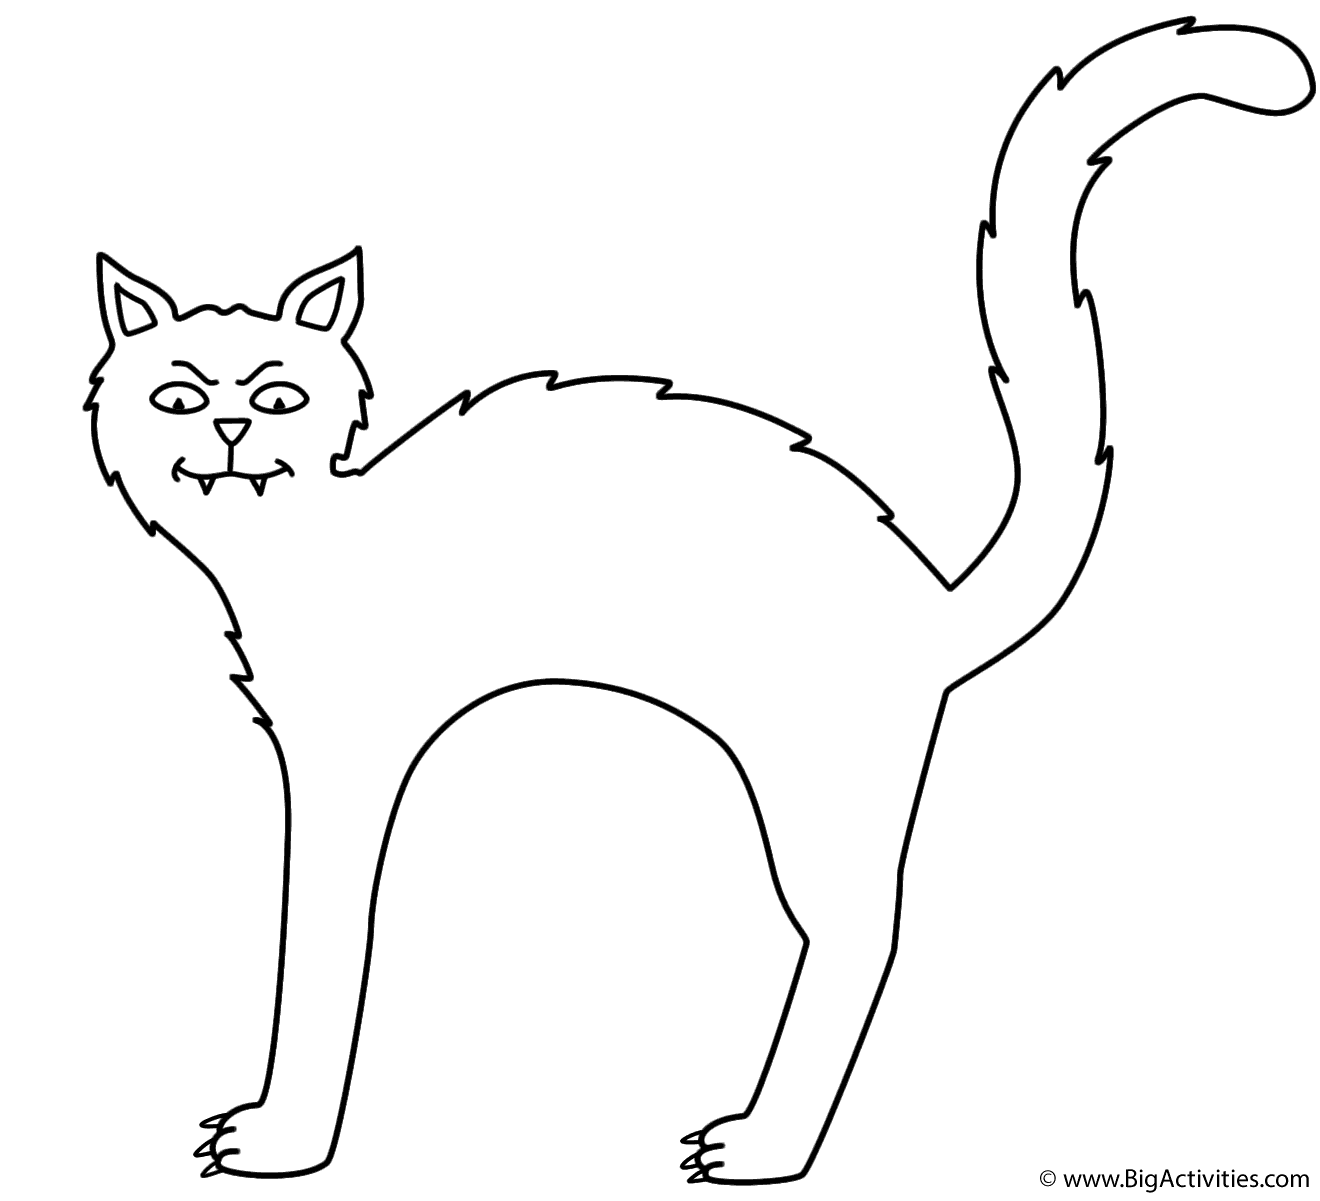 Black cat - Coloring Page (Halloween)